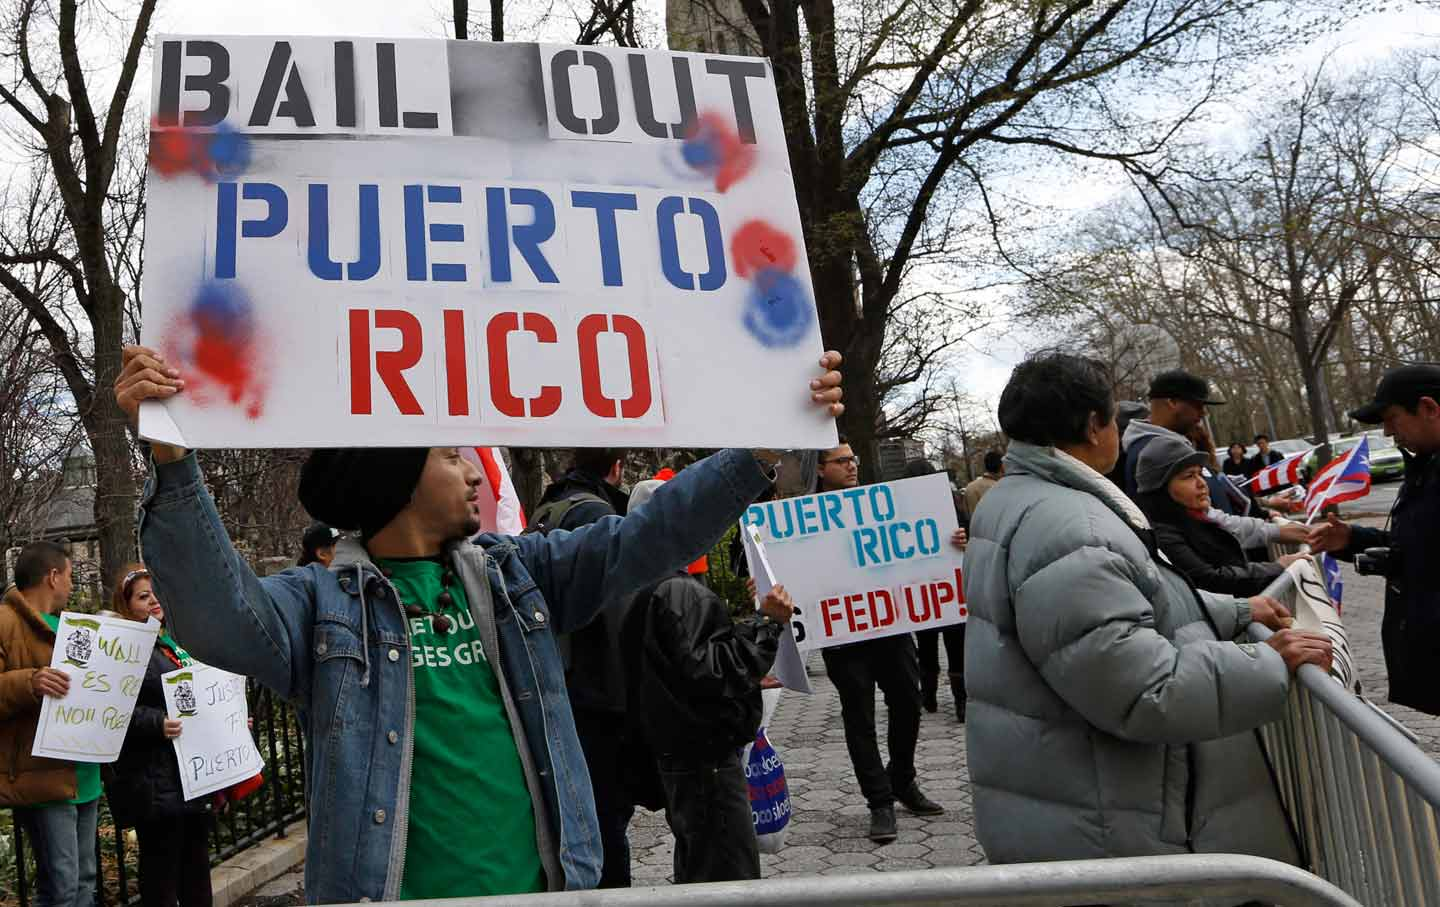 A demonstrator supports bailing out Puerto Rico